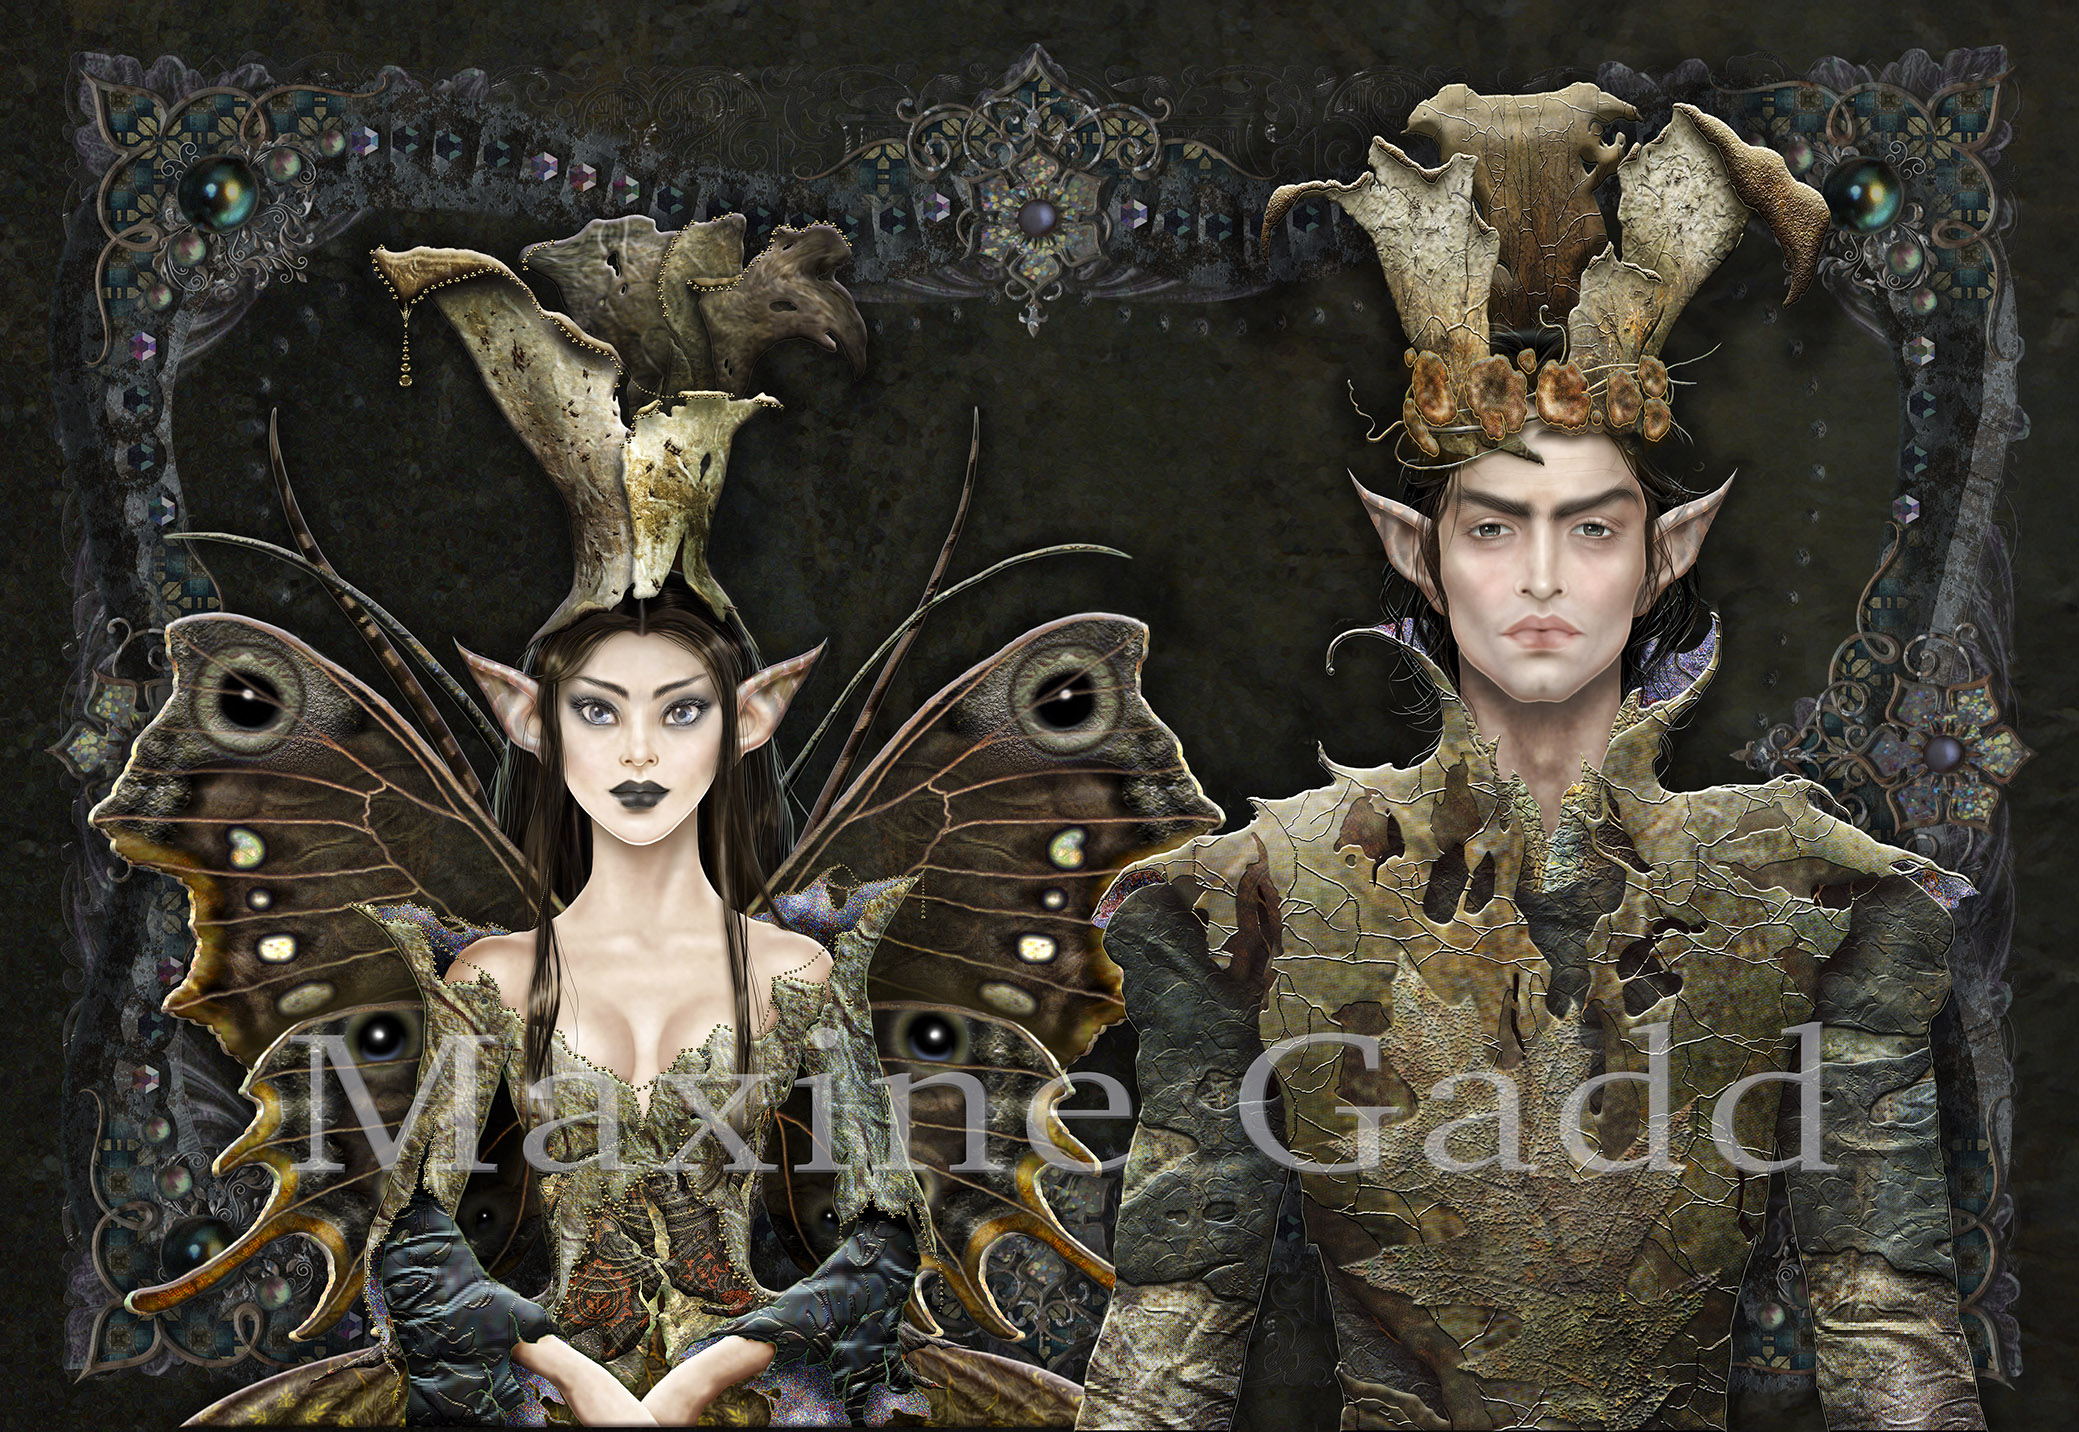 King and Queen of the Darkwood Elves